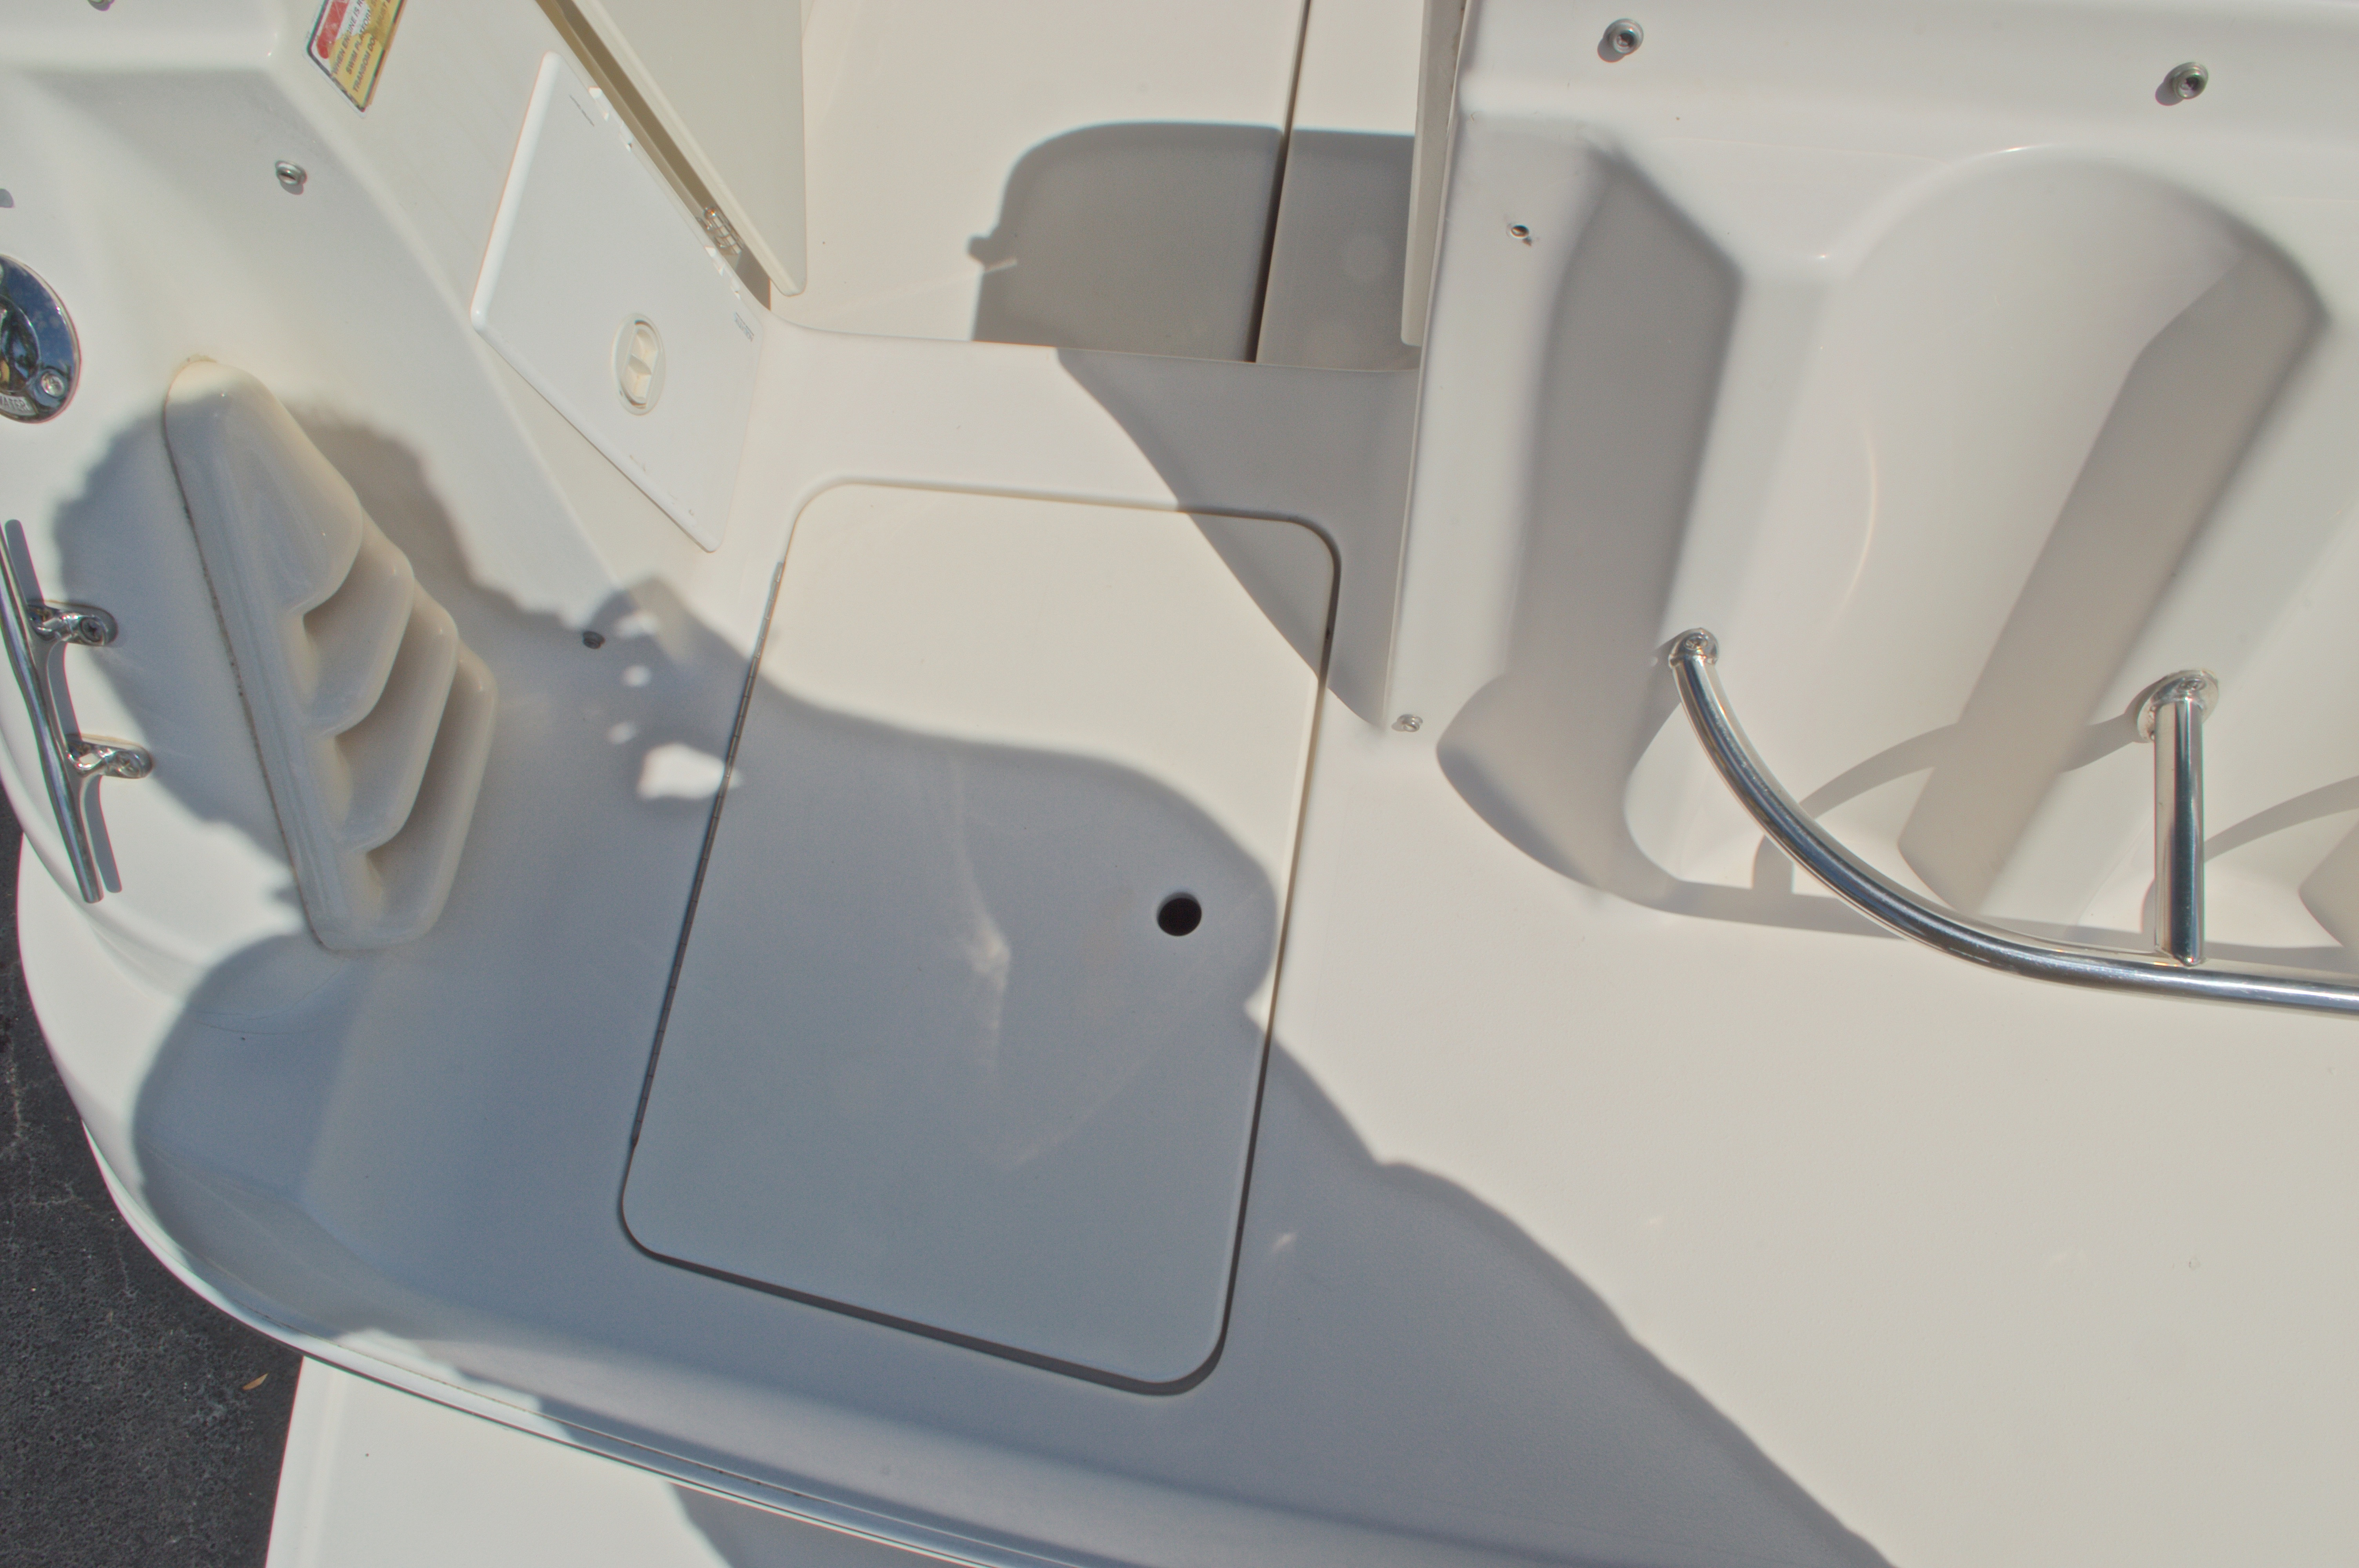 Thumbnail 15 for Used 2002 Monterey 262 Cruiser boat for sale in West Palm Beach, FL